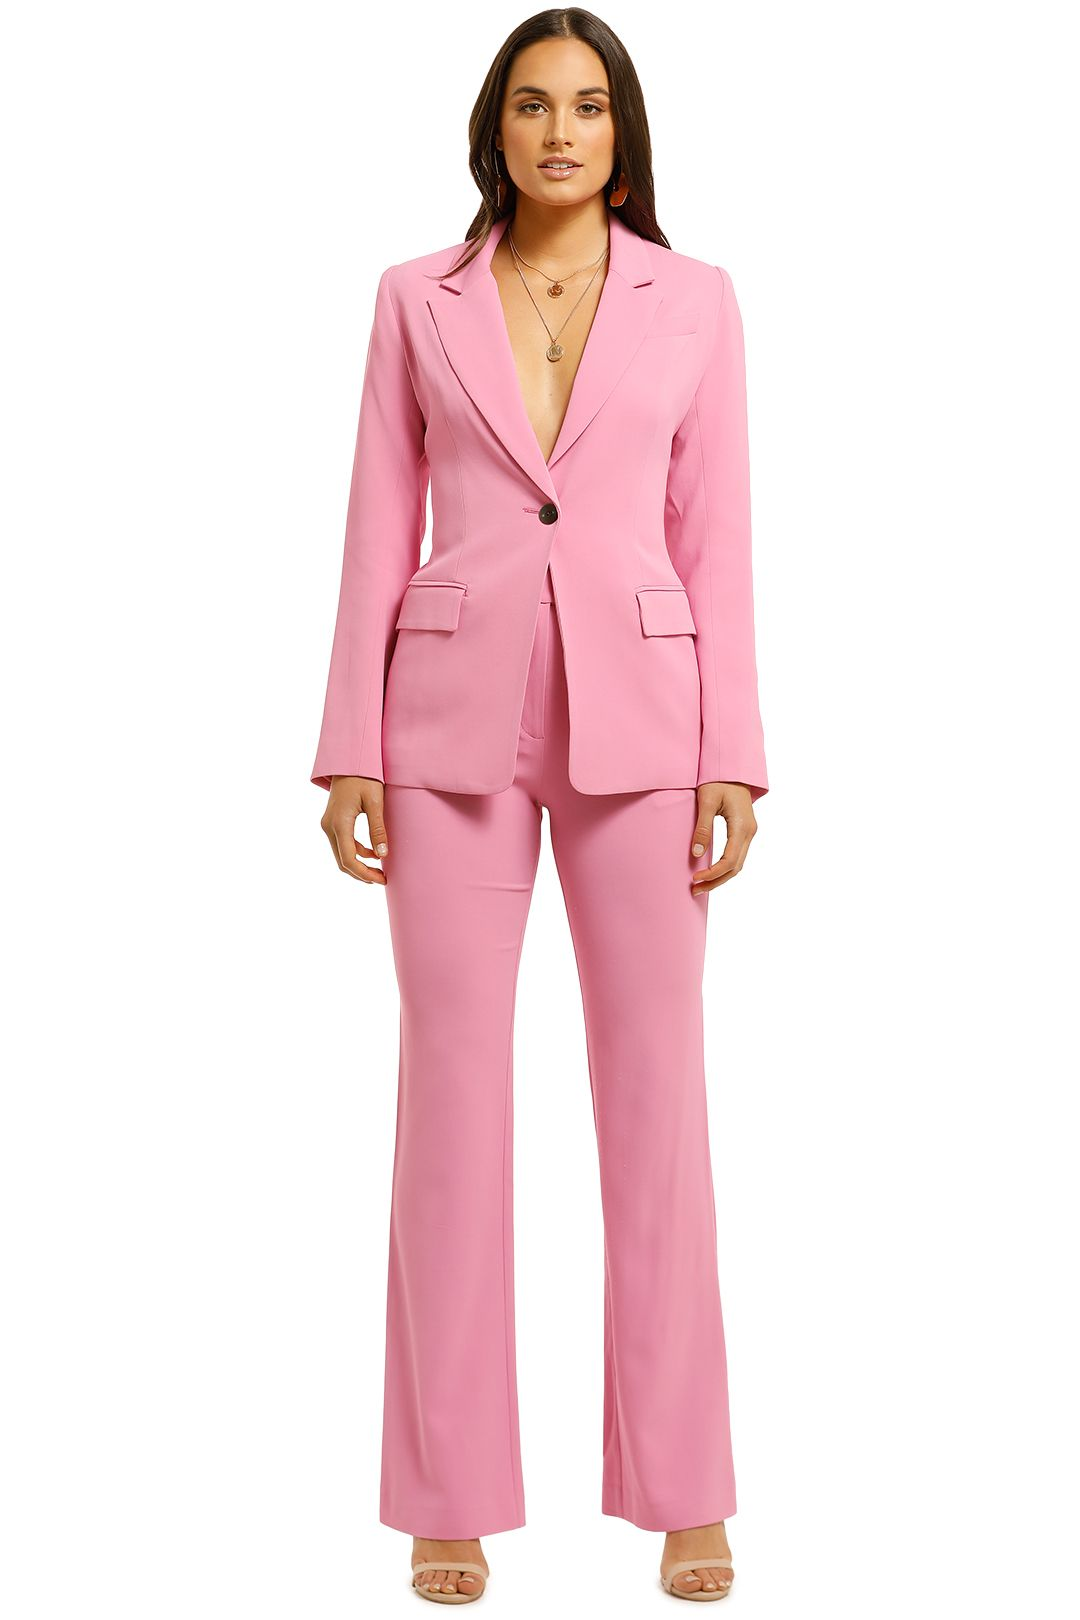 Ginger-and-Smart-Elixer-Jacket-and-Pant-Set-Passion-Pink-Front